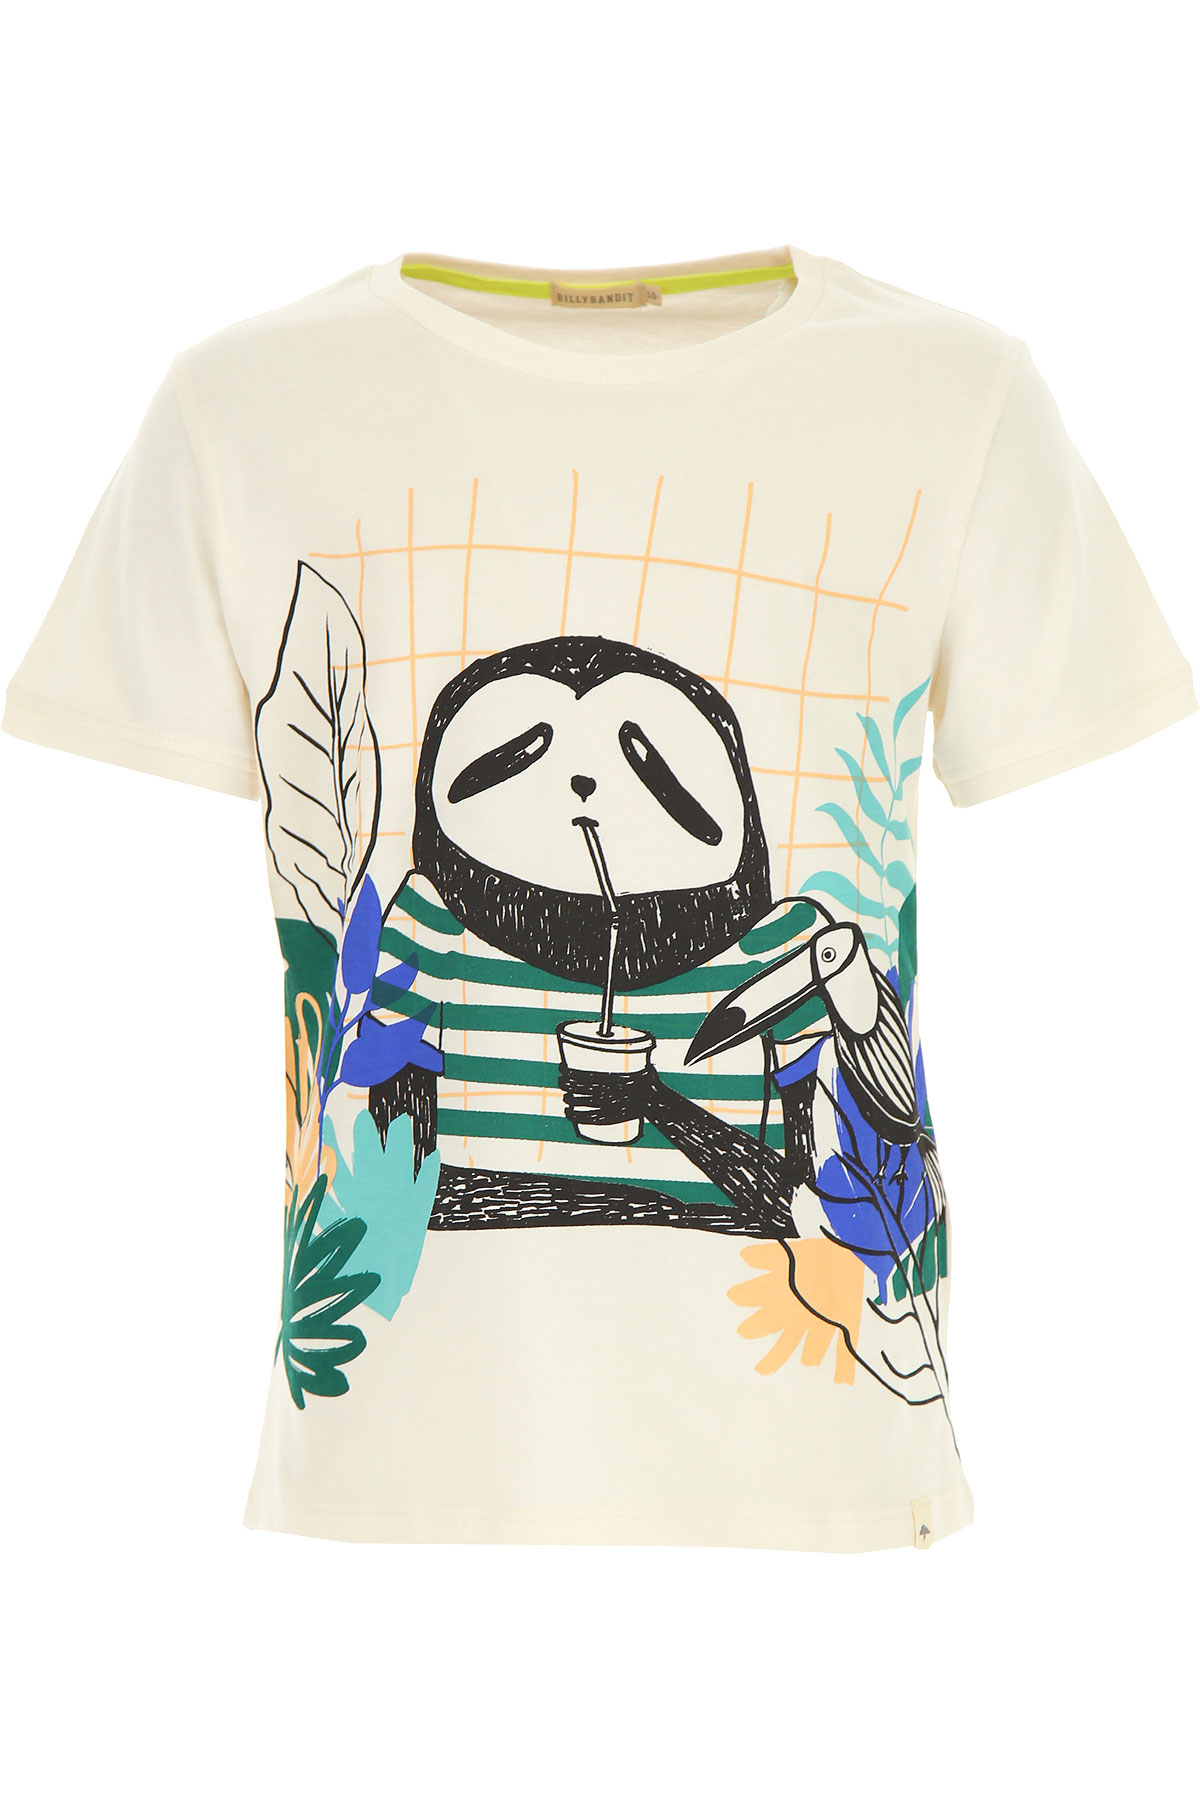 Billybandit Kids T-Shirt for Boys On Sale in Outlet, White, Cotton, 2019, 2Y 4Y